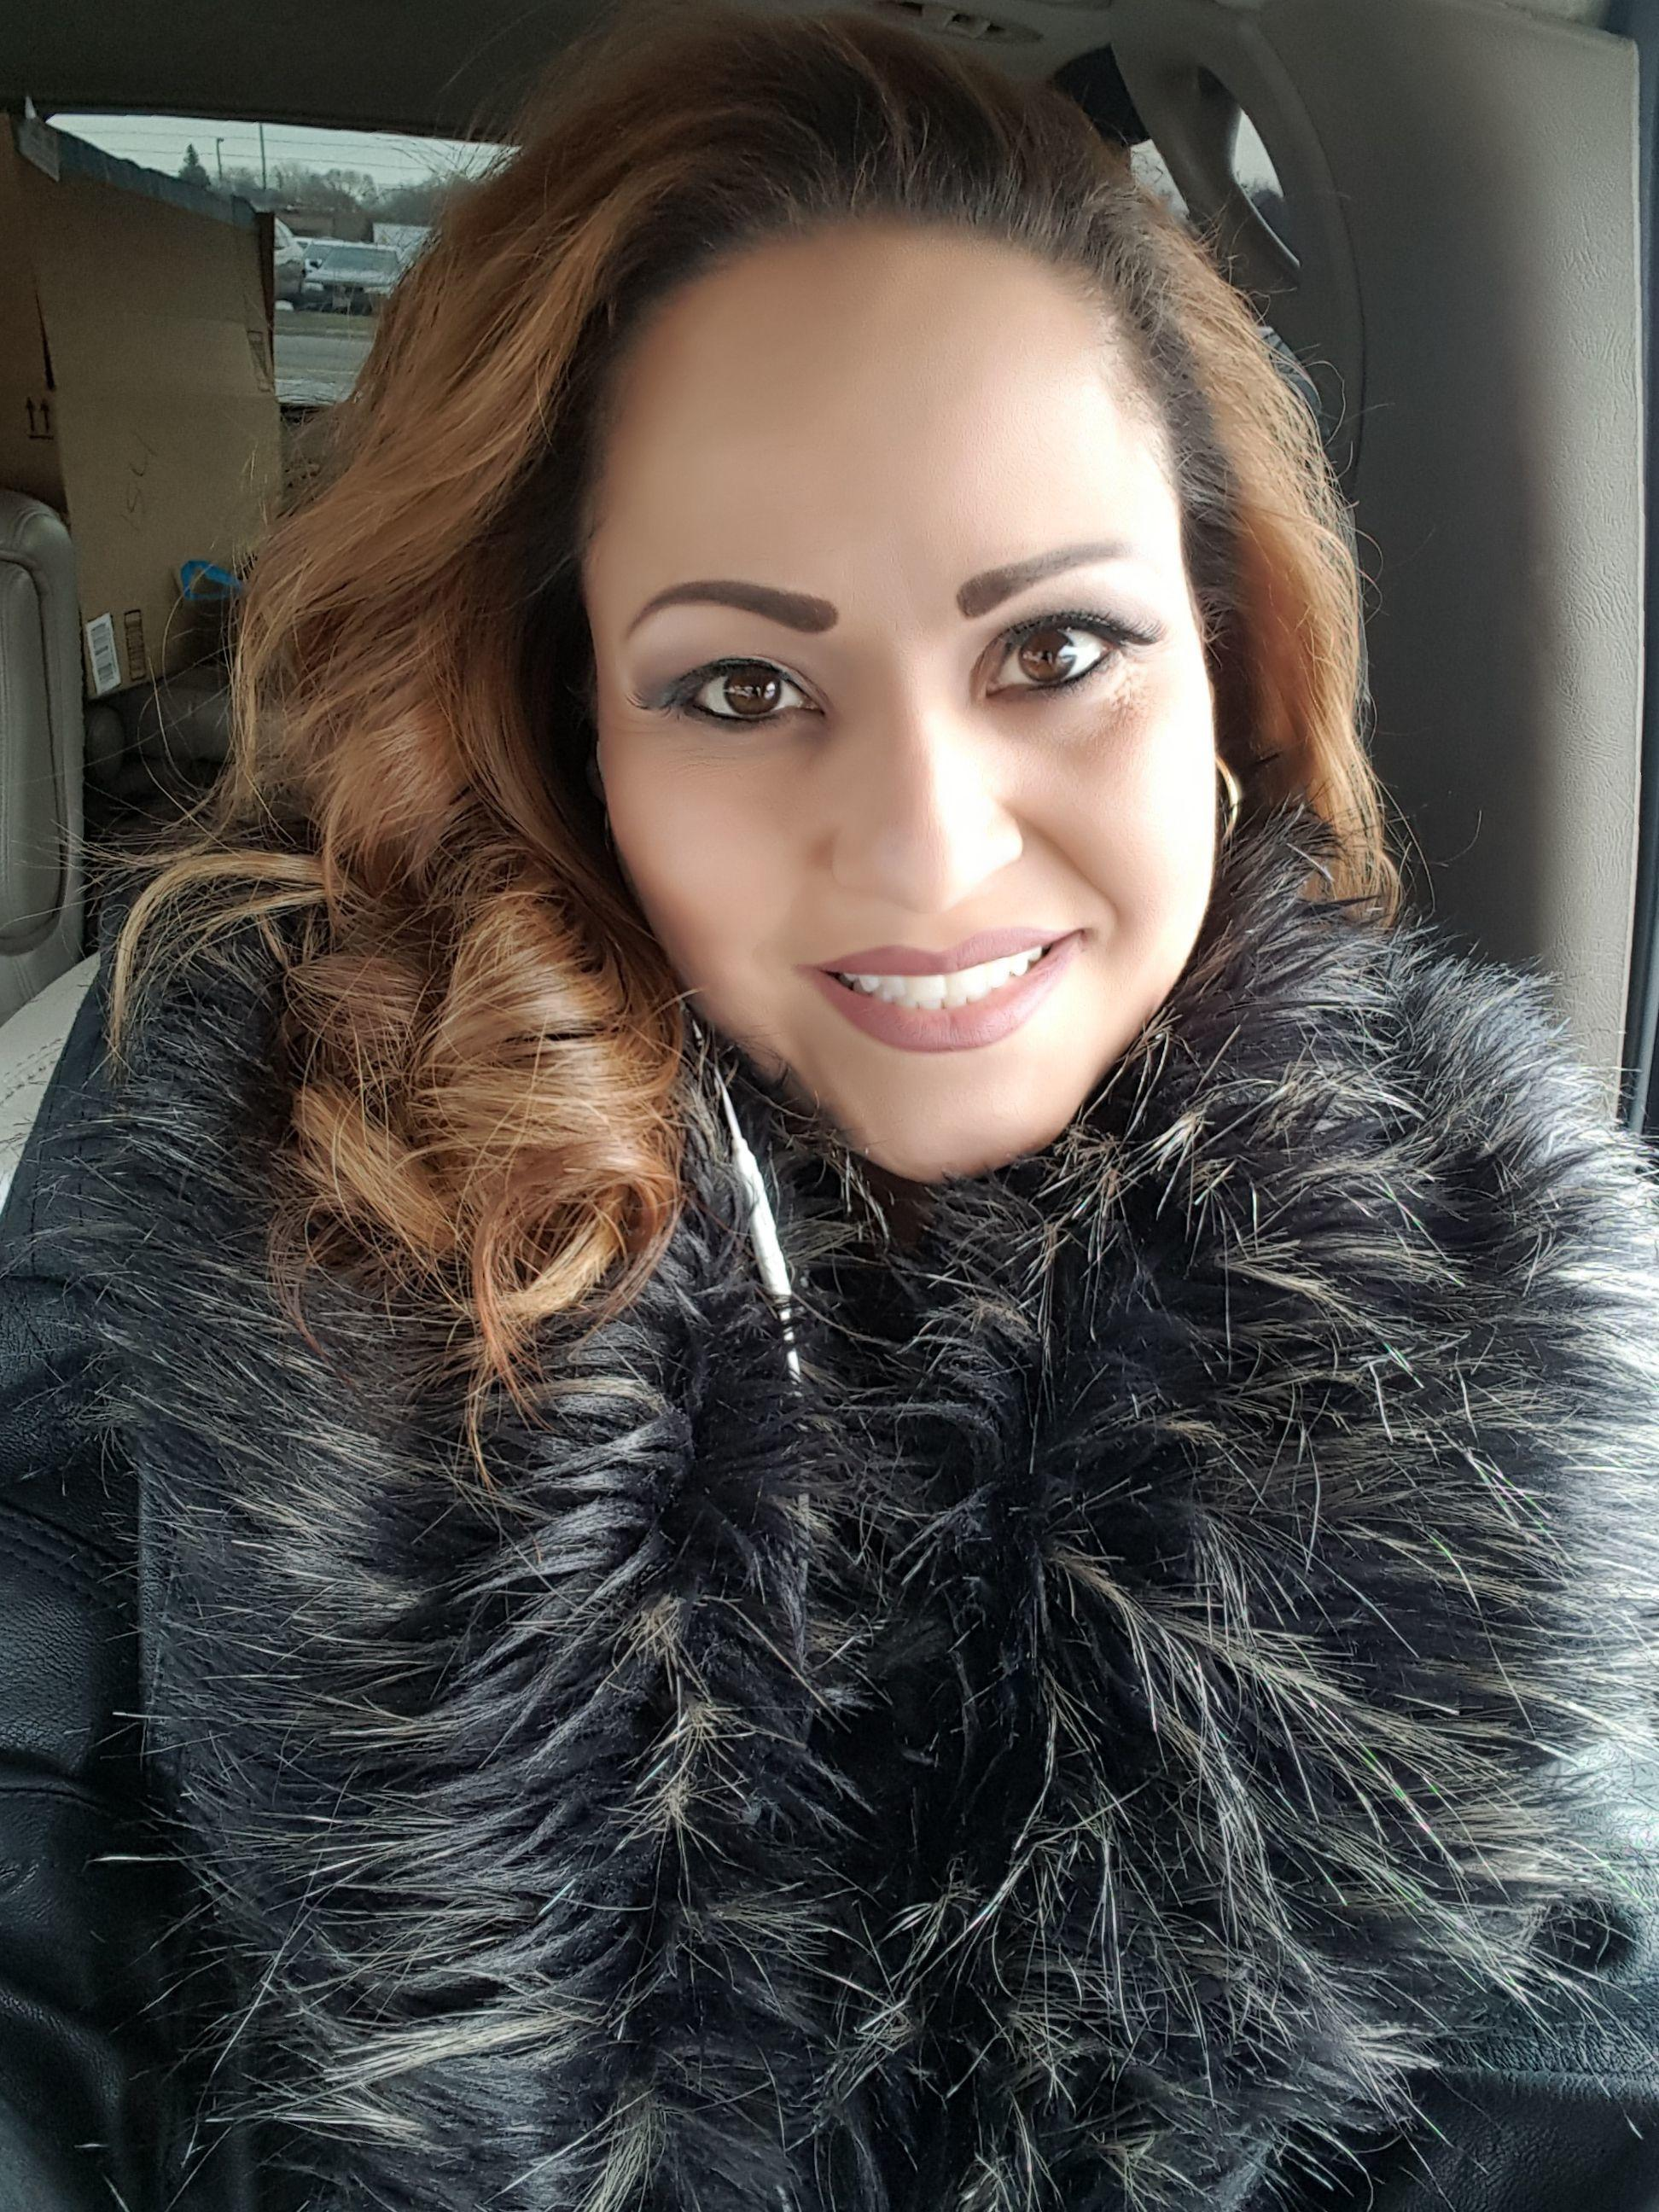 meet grayslake singles Beautiful single women in grayslake il,  in usa you can meet some of the most beautiful, loving, and sincere women in the world.